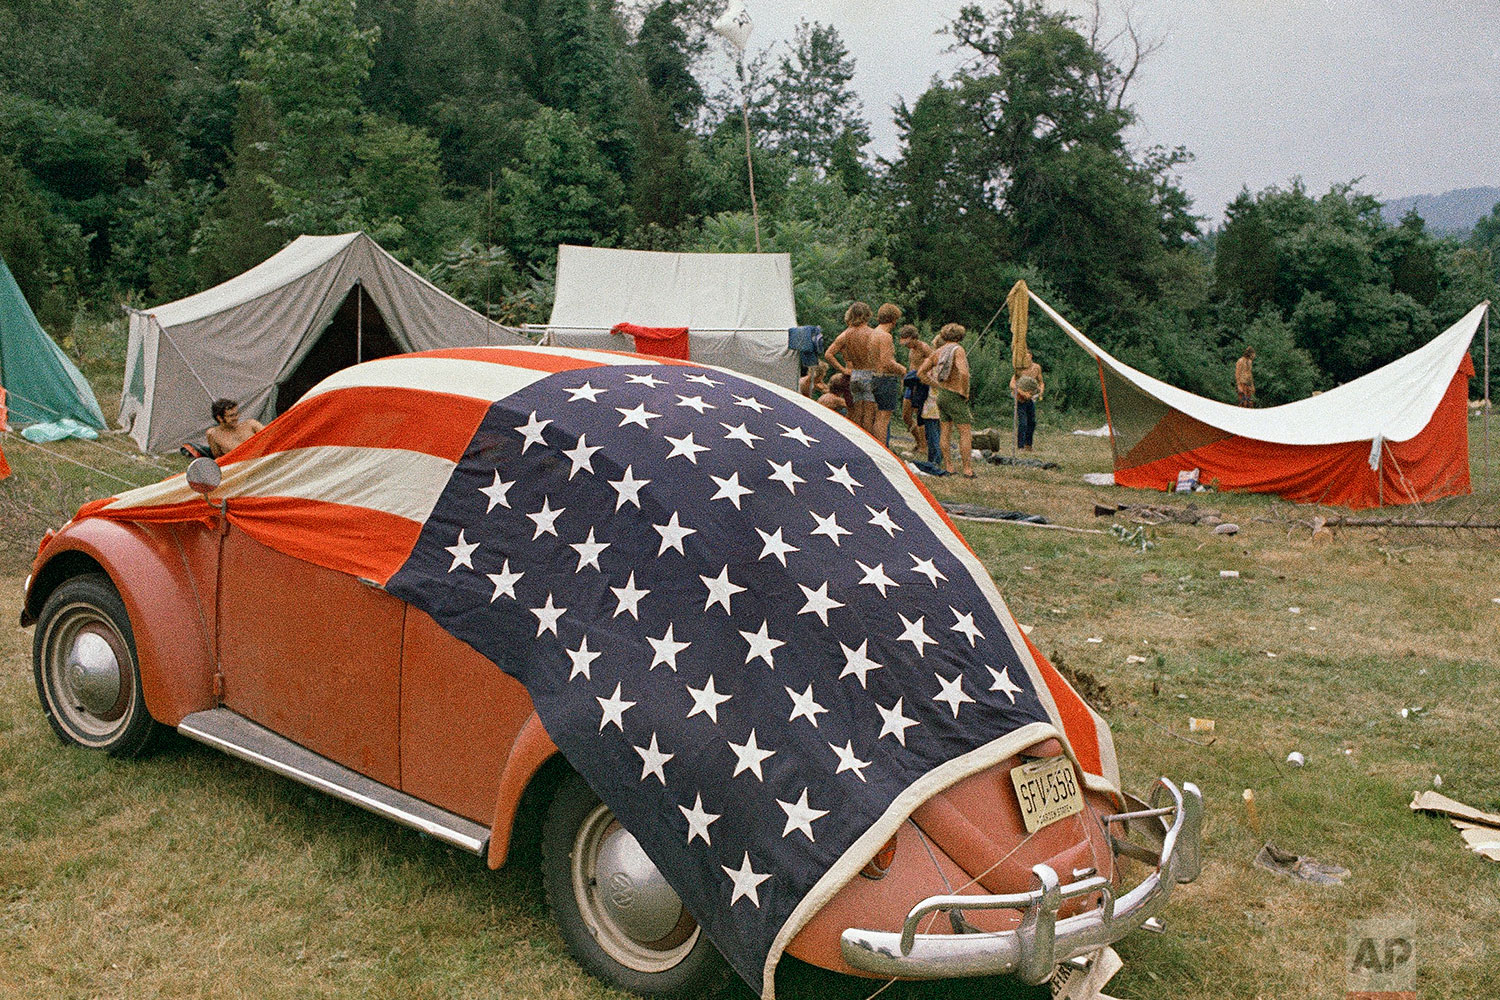 Attendees shown at the Powder Ridge Music Festival, Aug. 2, 1970, Middletown, Conn. (AP Photo)